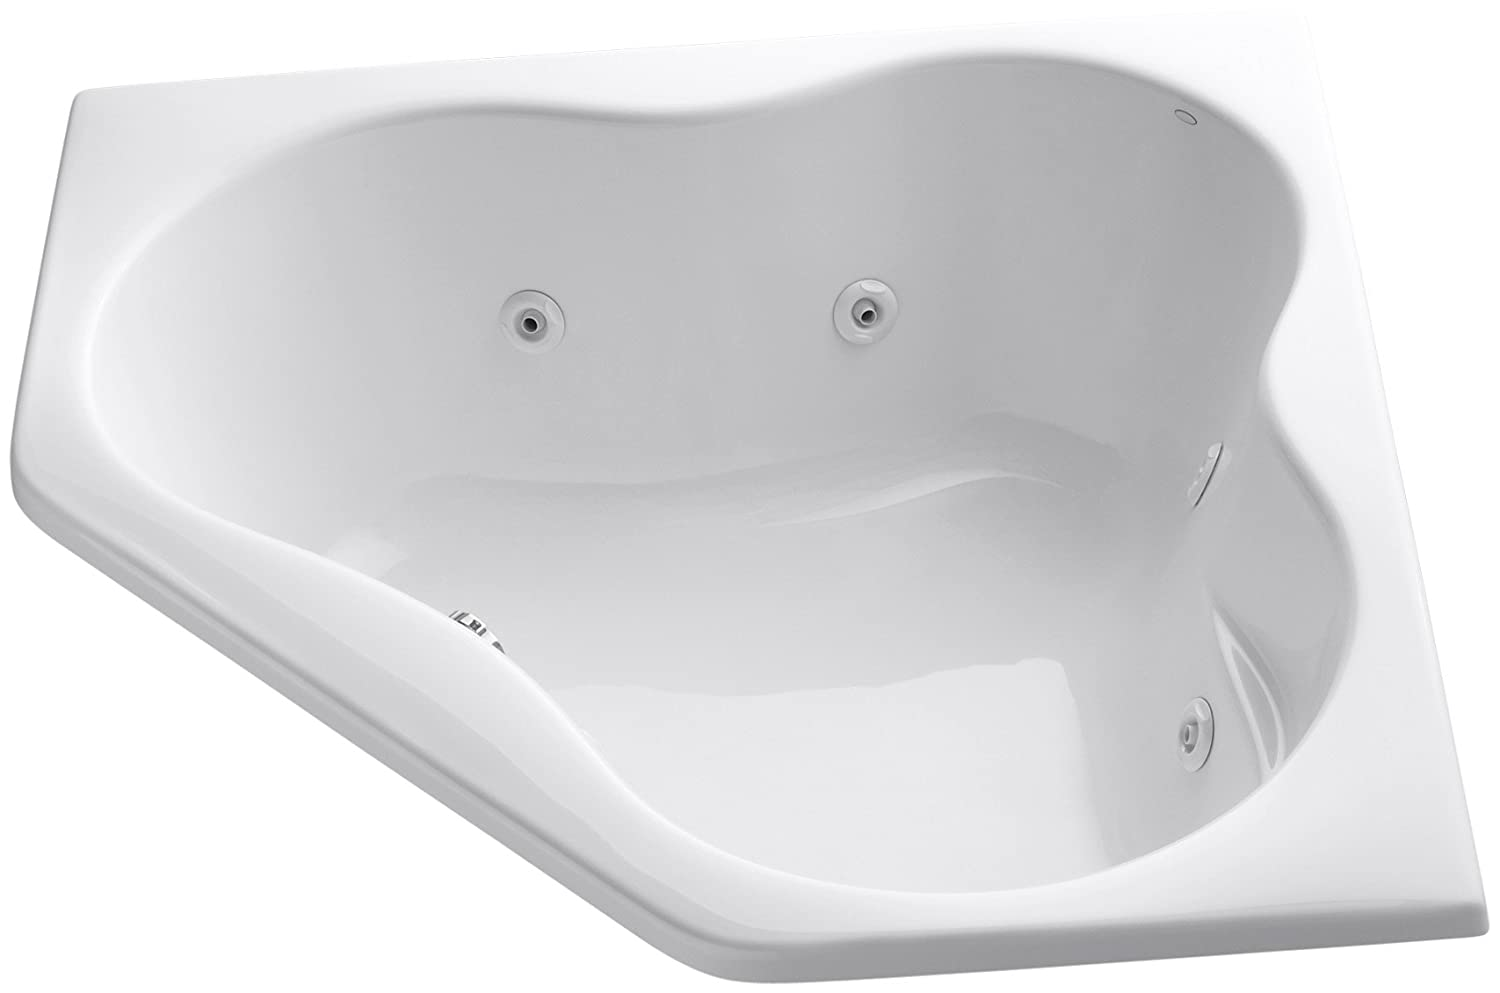 Kohler K-1154-0 5454 Corner Whirlpool, White - Drop In Bathtubs ...